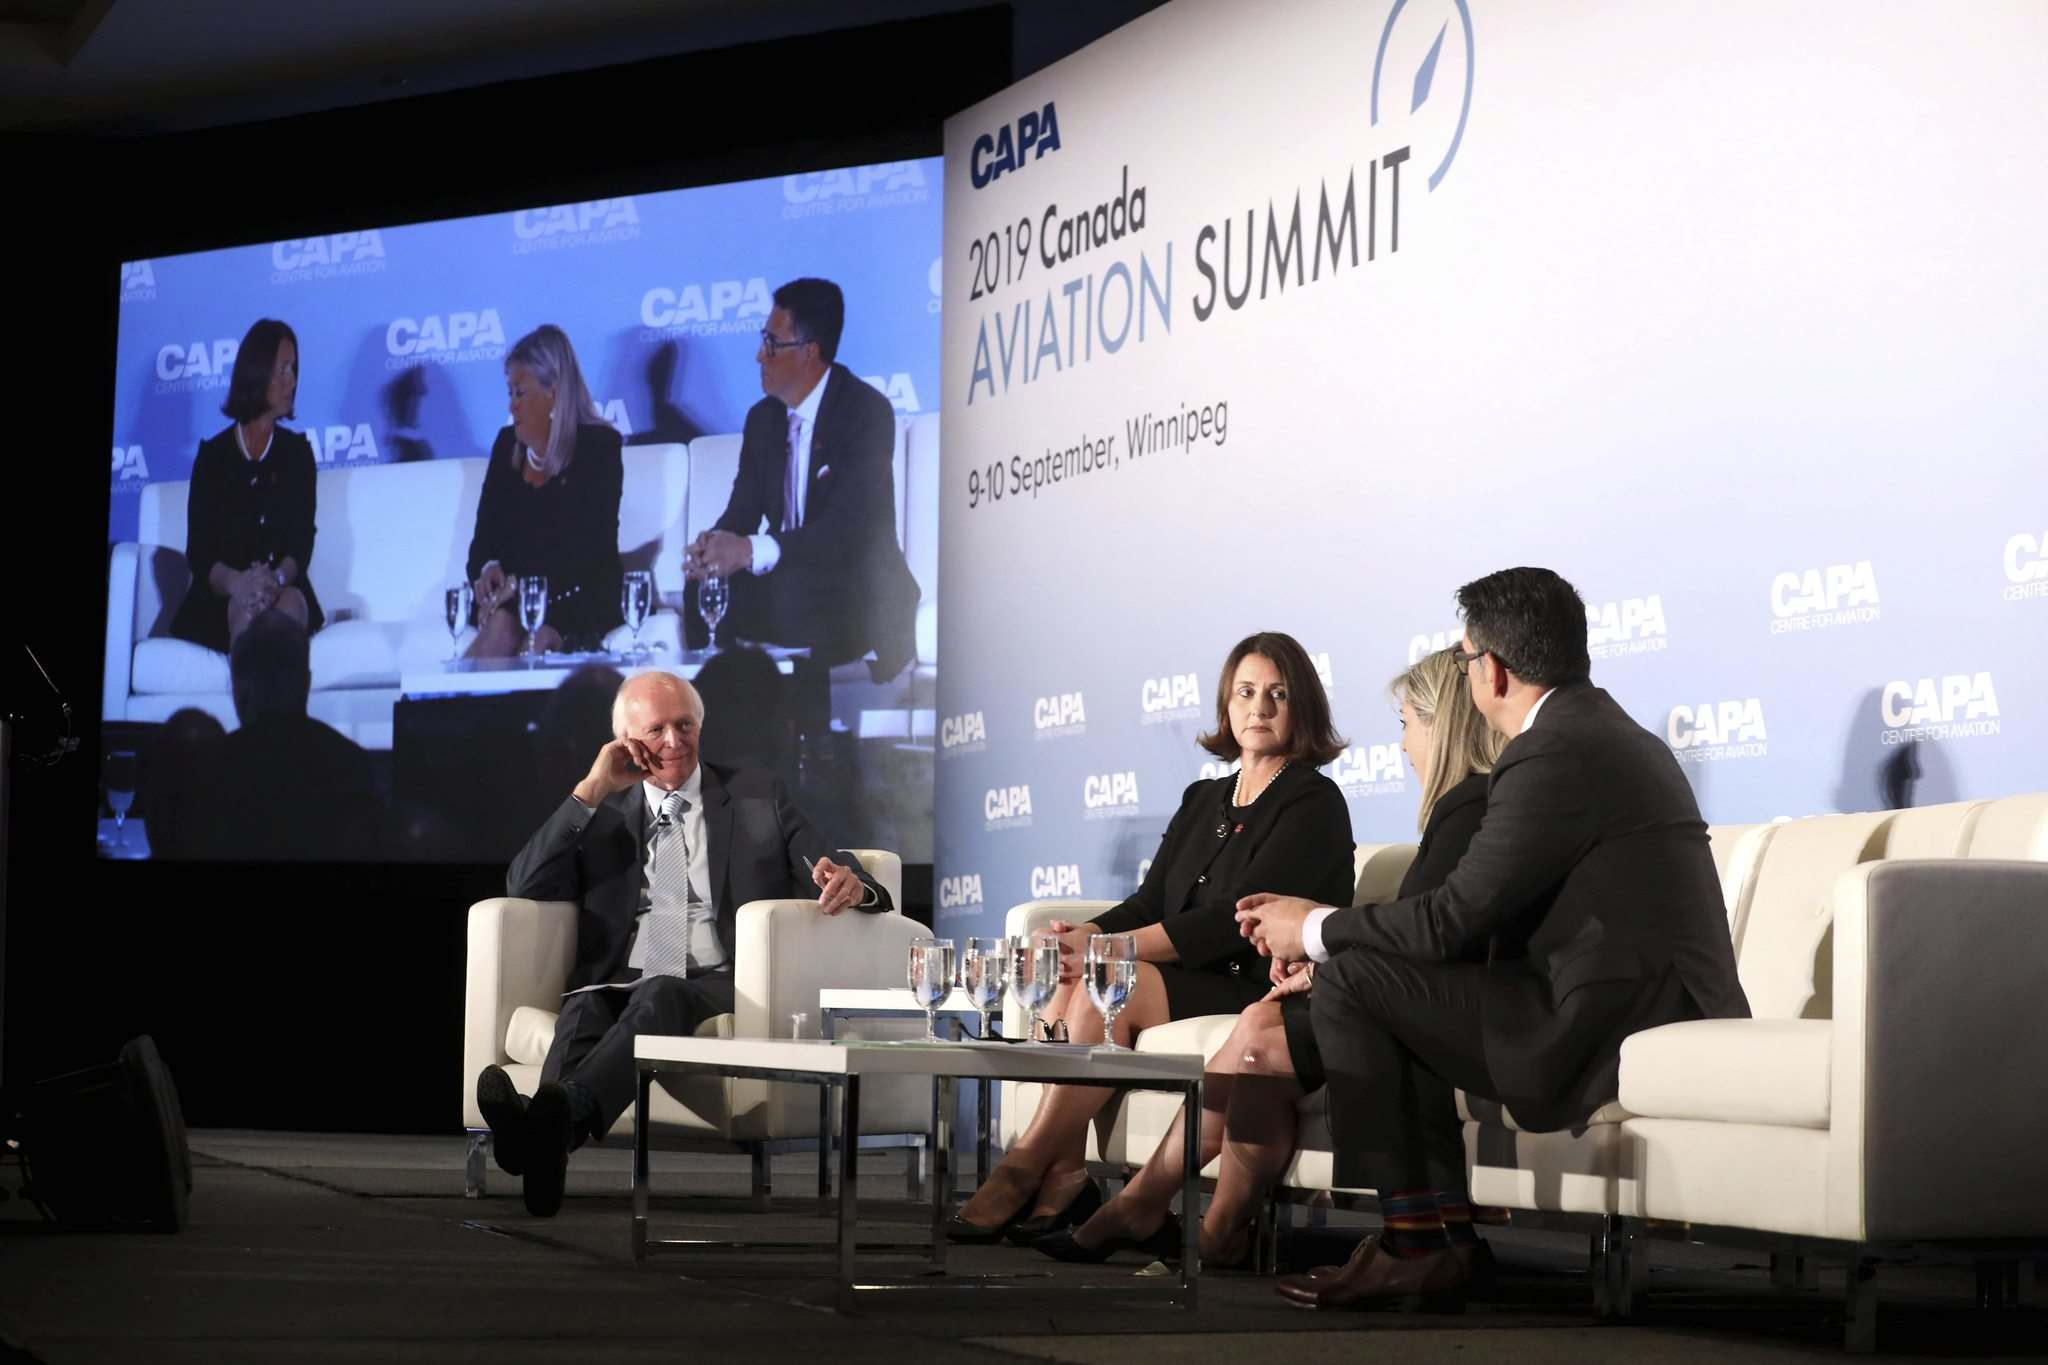 RUTH BONNEVILLE / WINNIPEG FREE fress</p><p>A panel discussion with Peter Harbison (from left), CAPA founder; Catherine Dyer, Air Canada's chief information officer; Lucie Guillemette, Air Canada's executive vice-president and chief commercial officer; and Ferio Pugliese, the senior vice-president in charge of Air Canada Express and government relations, at the Canada Aviation Summit at the Fairmont Hotel on Monday.</p></p>